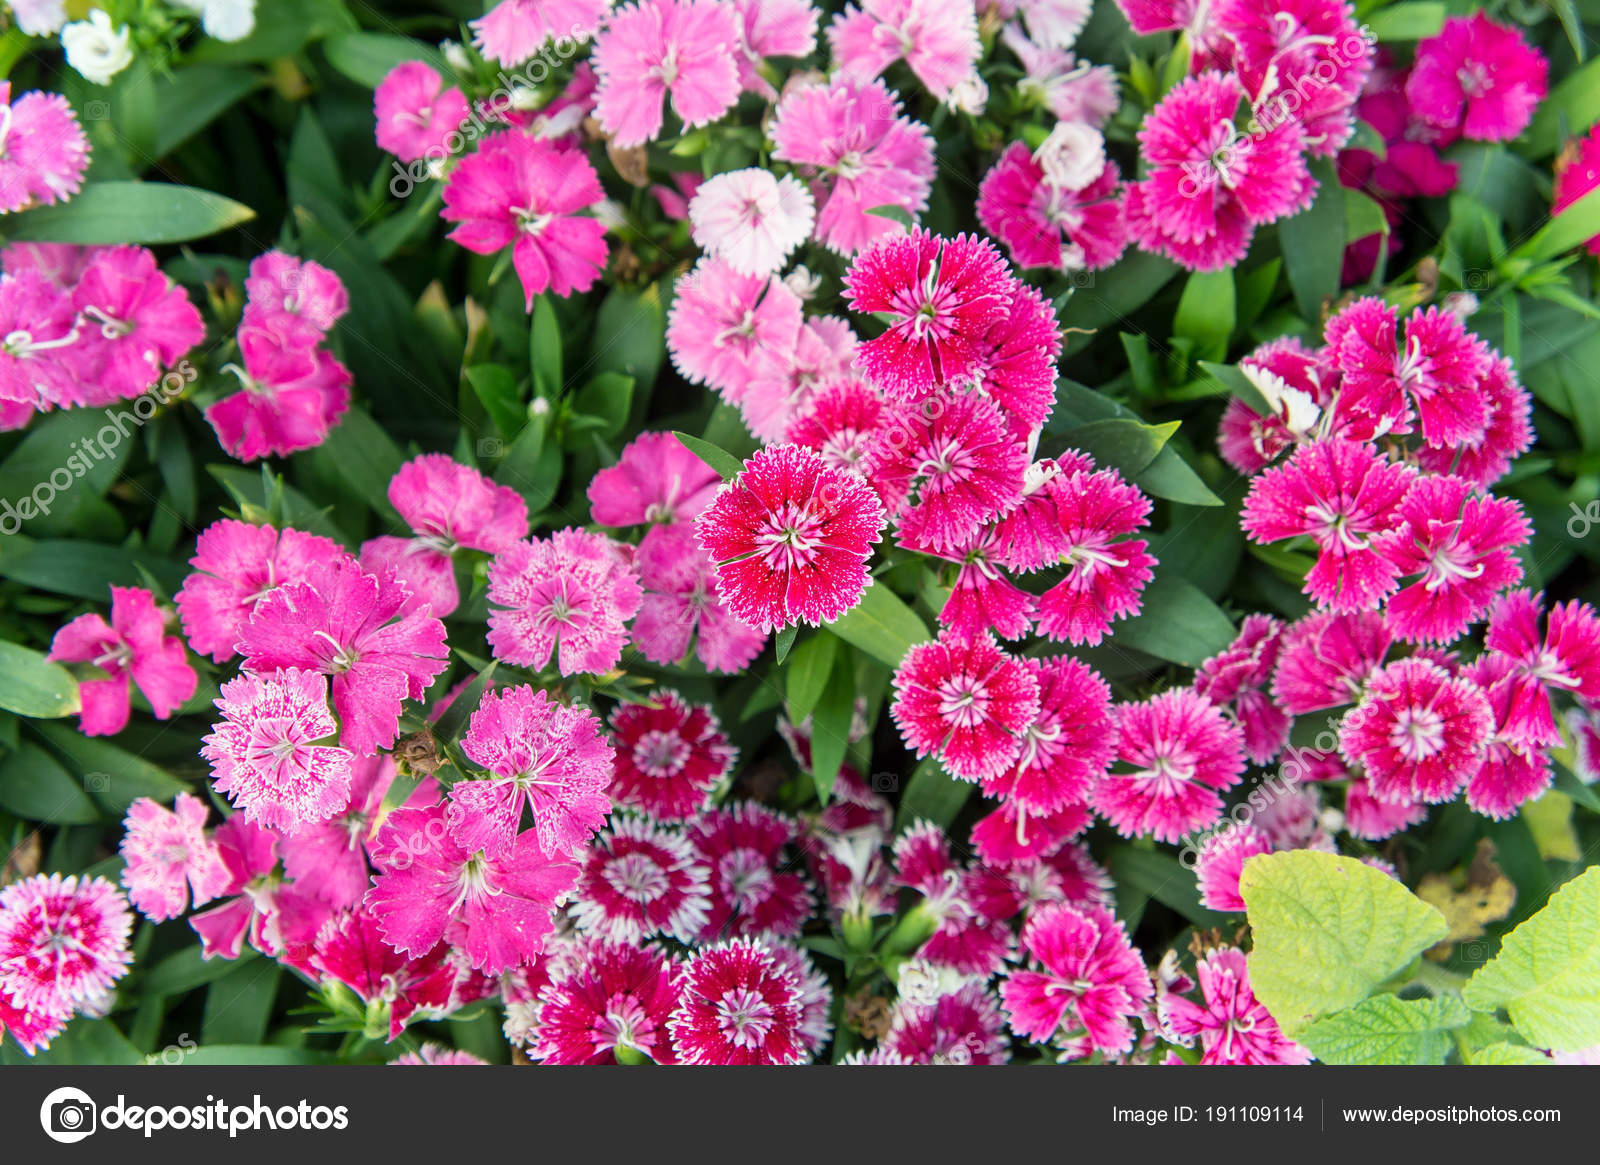 Dianthus Flowers Colorful Flowers Daisy Vivid Flowers In The